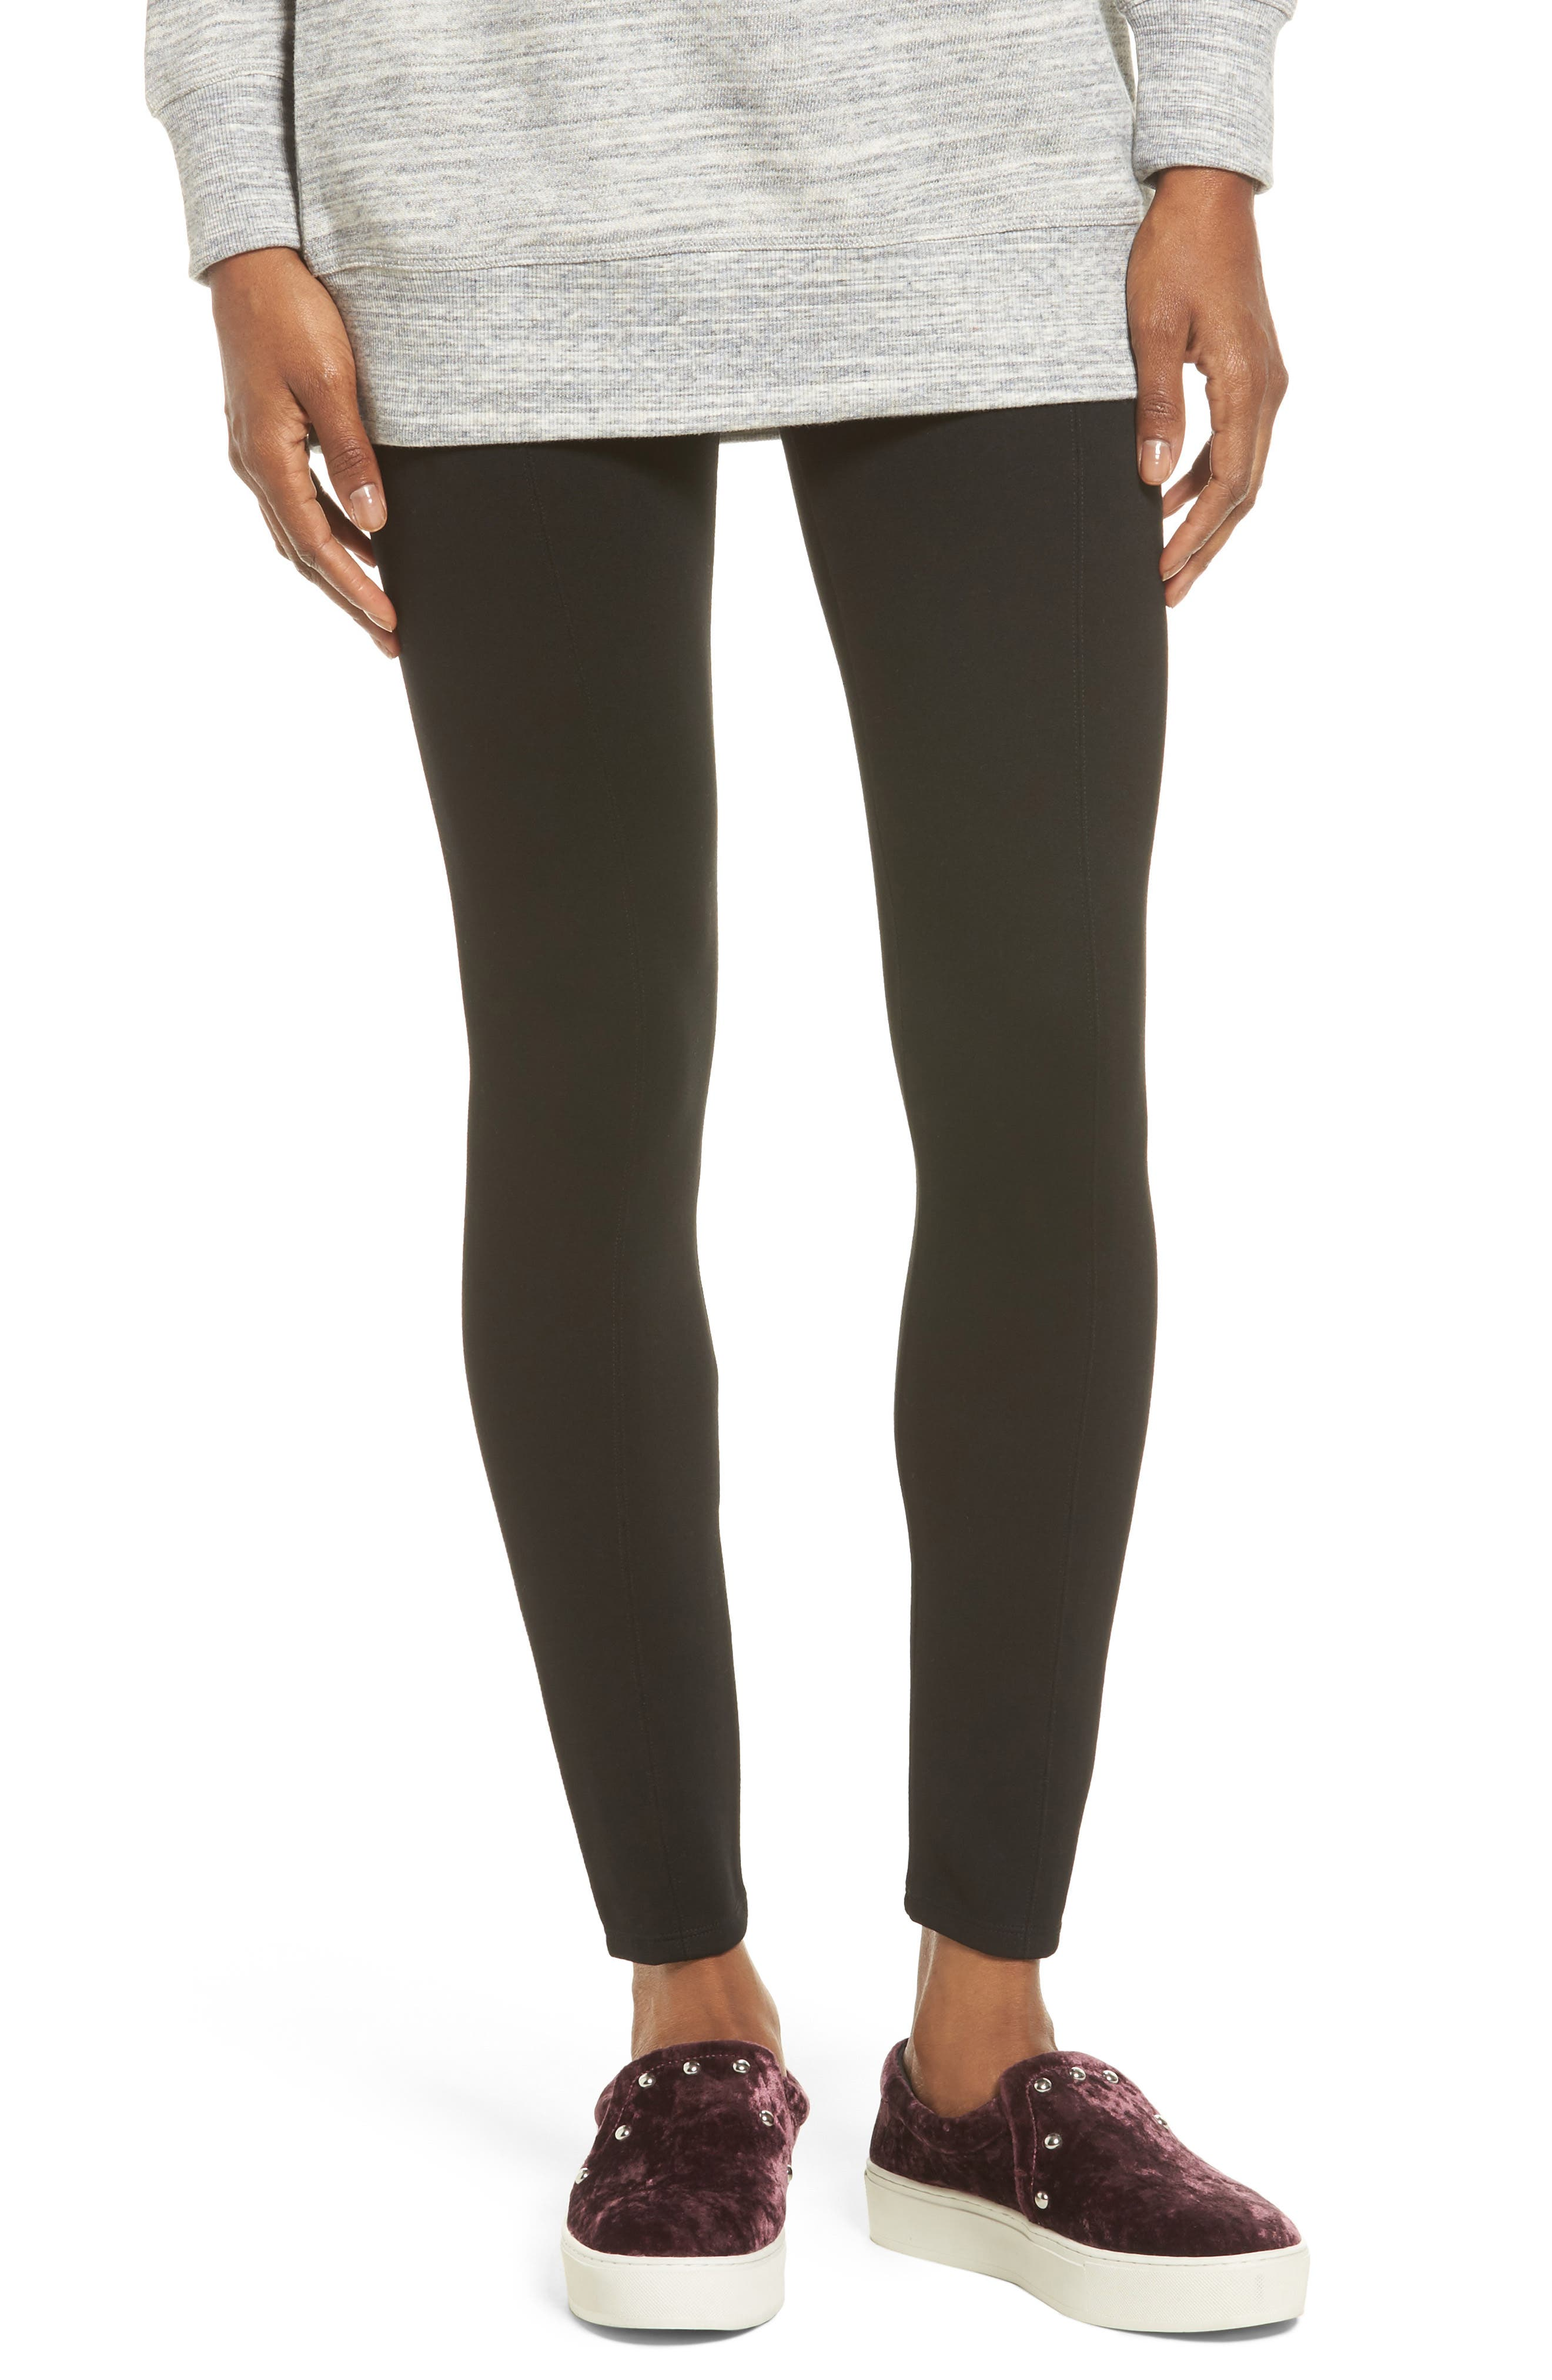 Main Image - Lyssé High Waist Seamed Leggings